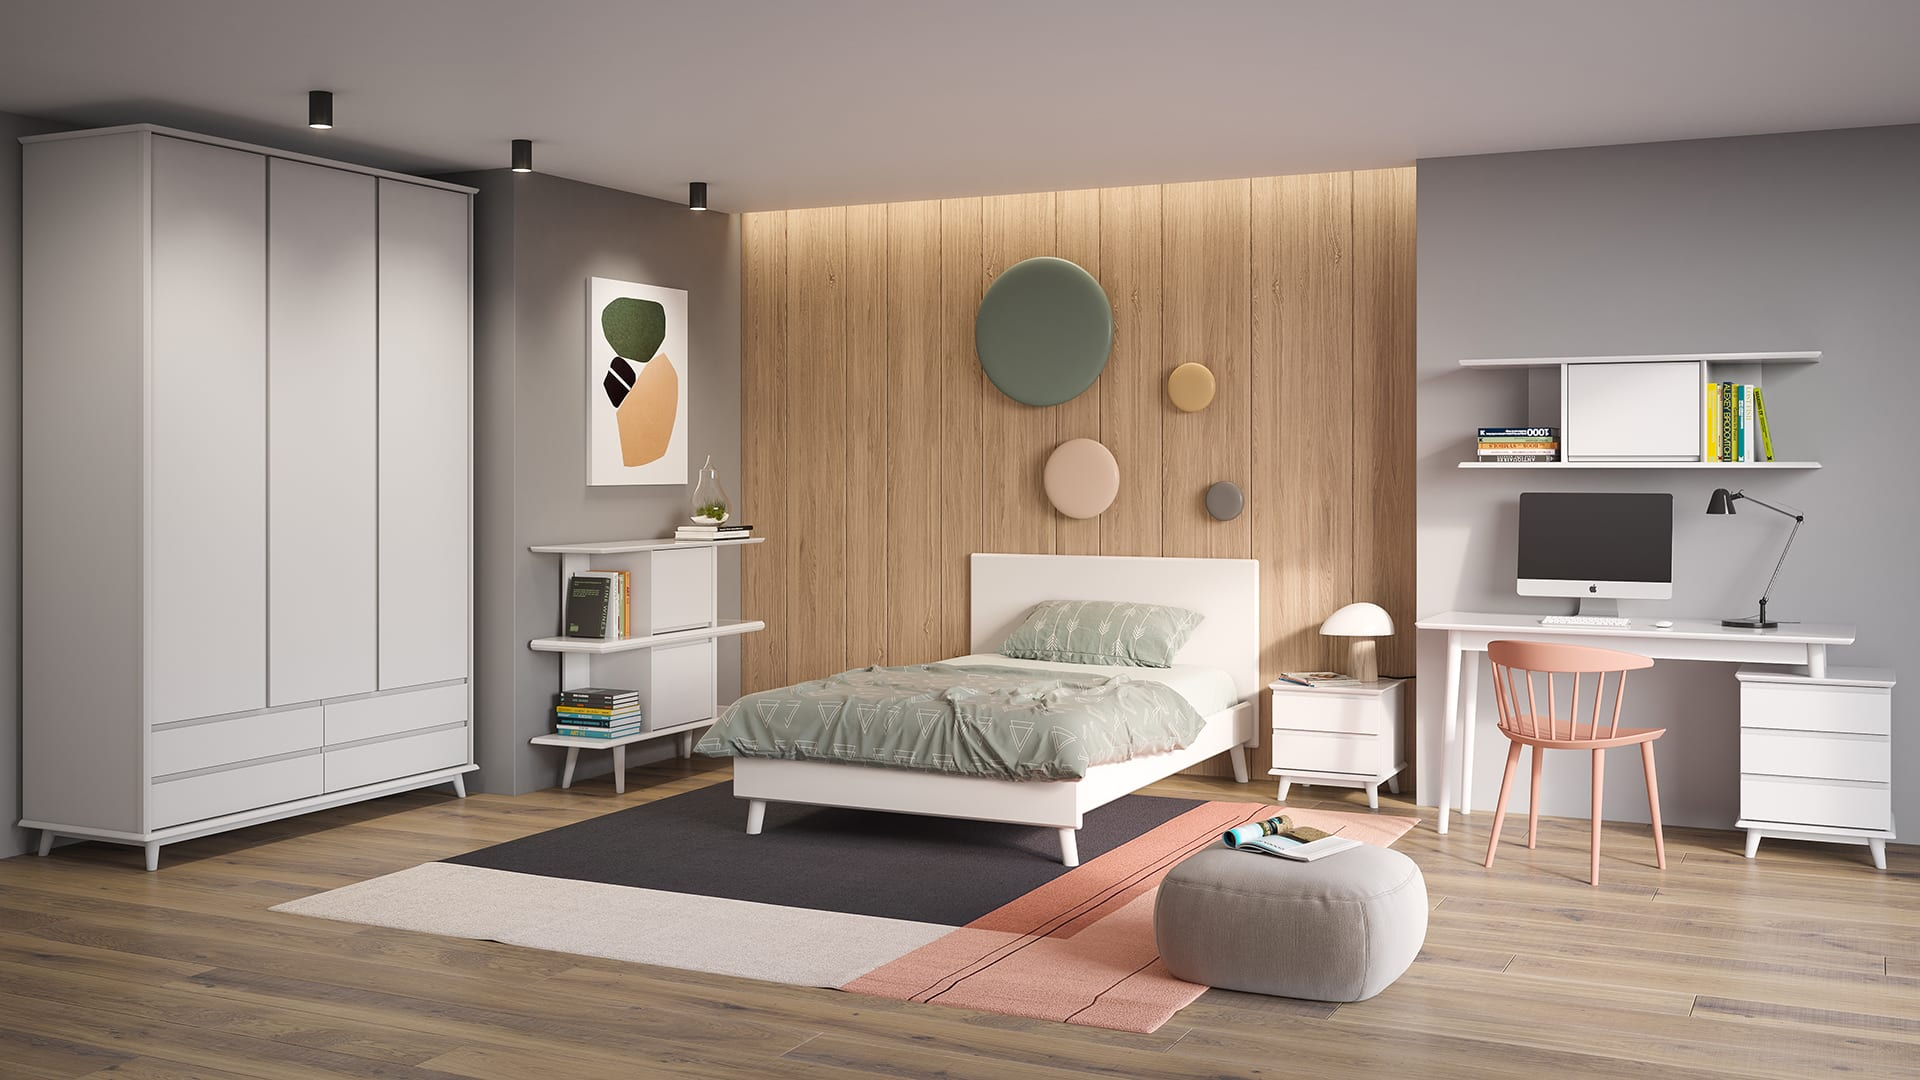 Maayan-Golan_Architectural-Visualization_product-visualization_childrens-furniture_Barzilay_girls-room_06